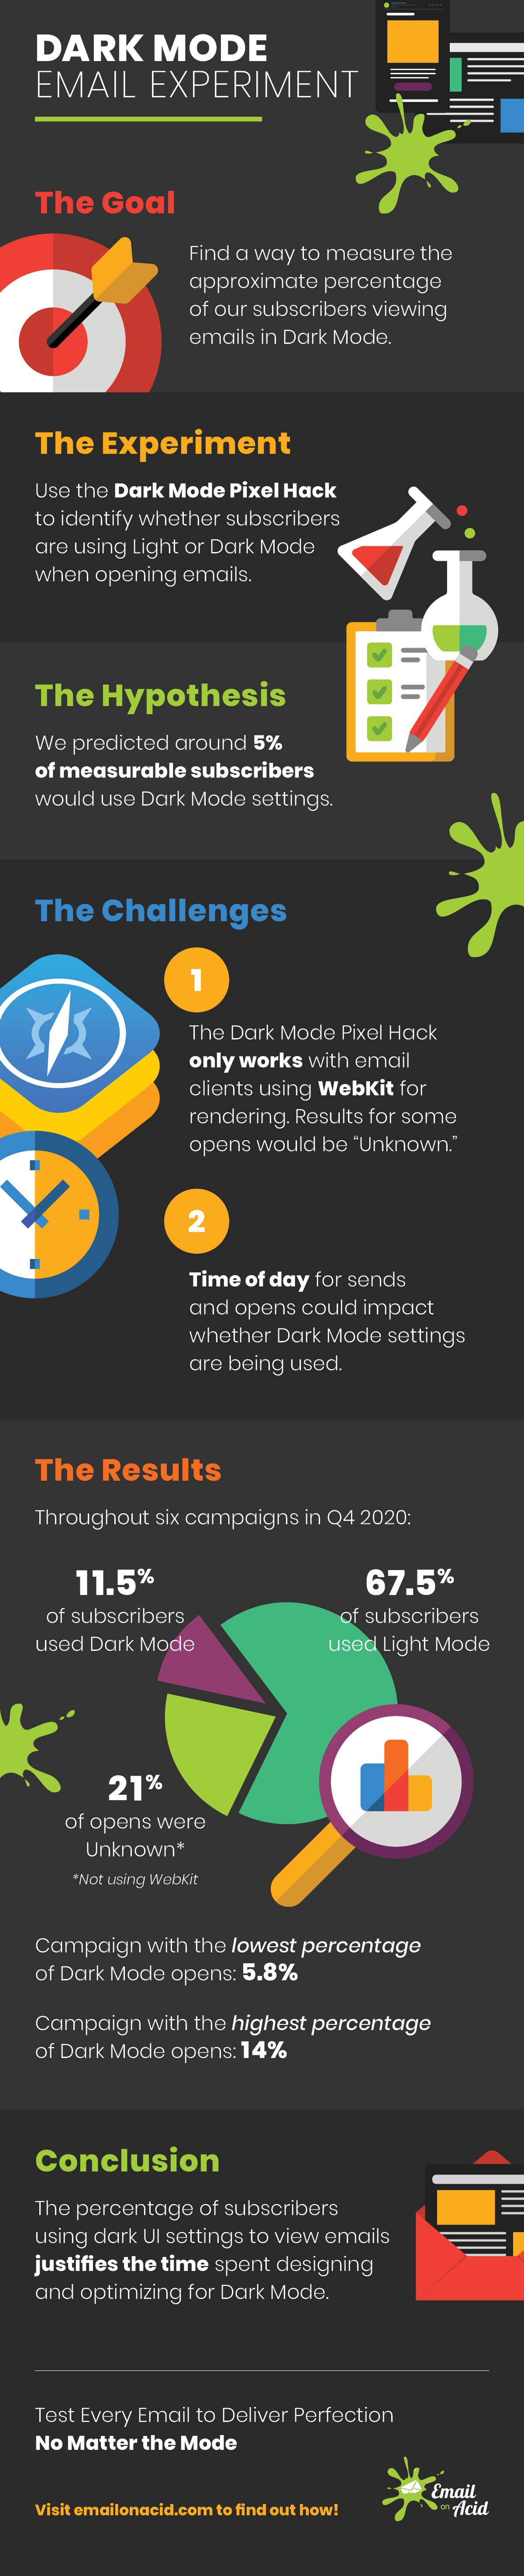 dark mode email test results graphic